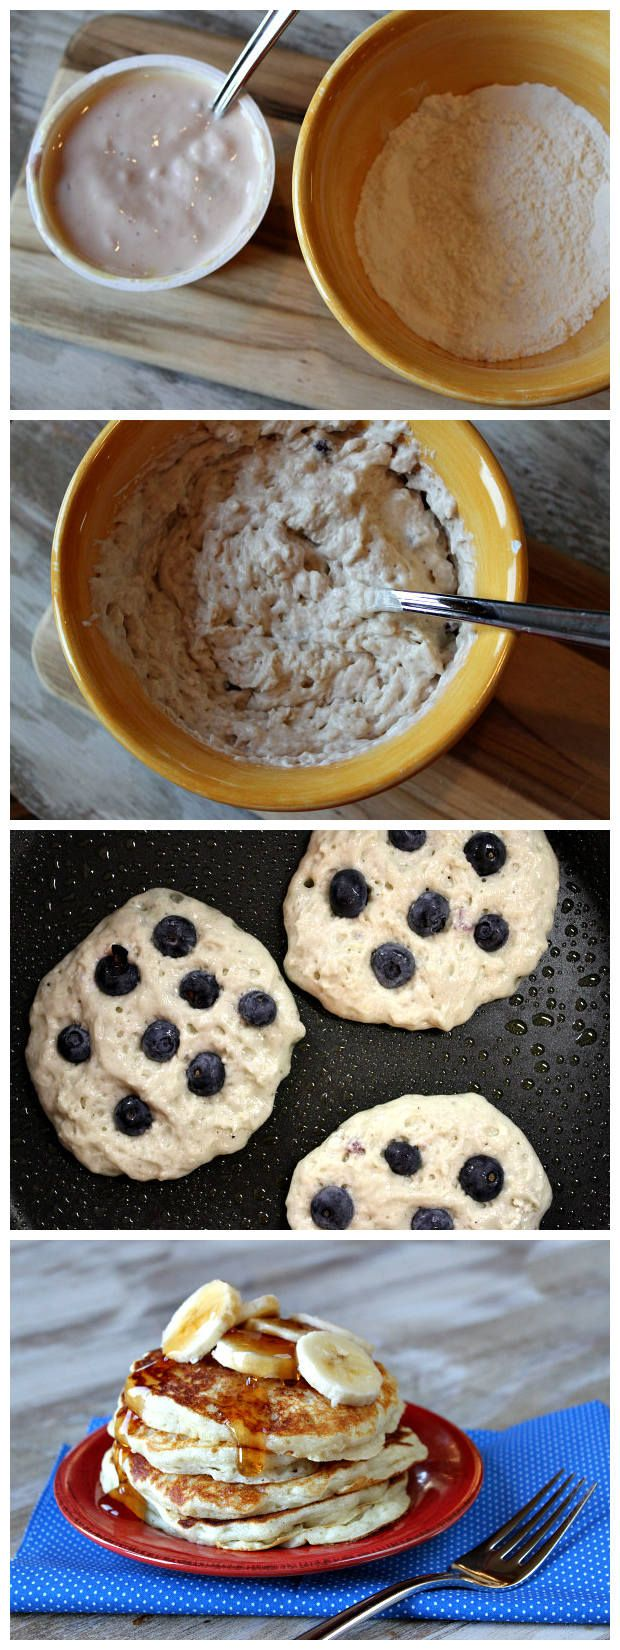 Ingredients: One 5.3-ounce container nonfat Greek Yogurt (any flavor- see *Tips) 1 large egg (or 2 large egg whites) 1/2 cup Gold Medal® All-Purpose Flour 1 teaspoon baking soda 1/2 cup fres…